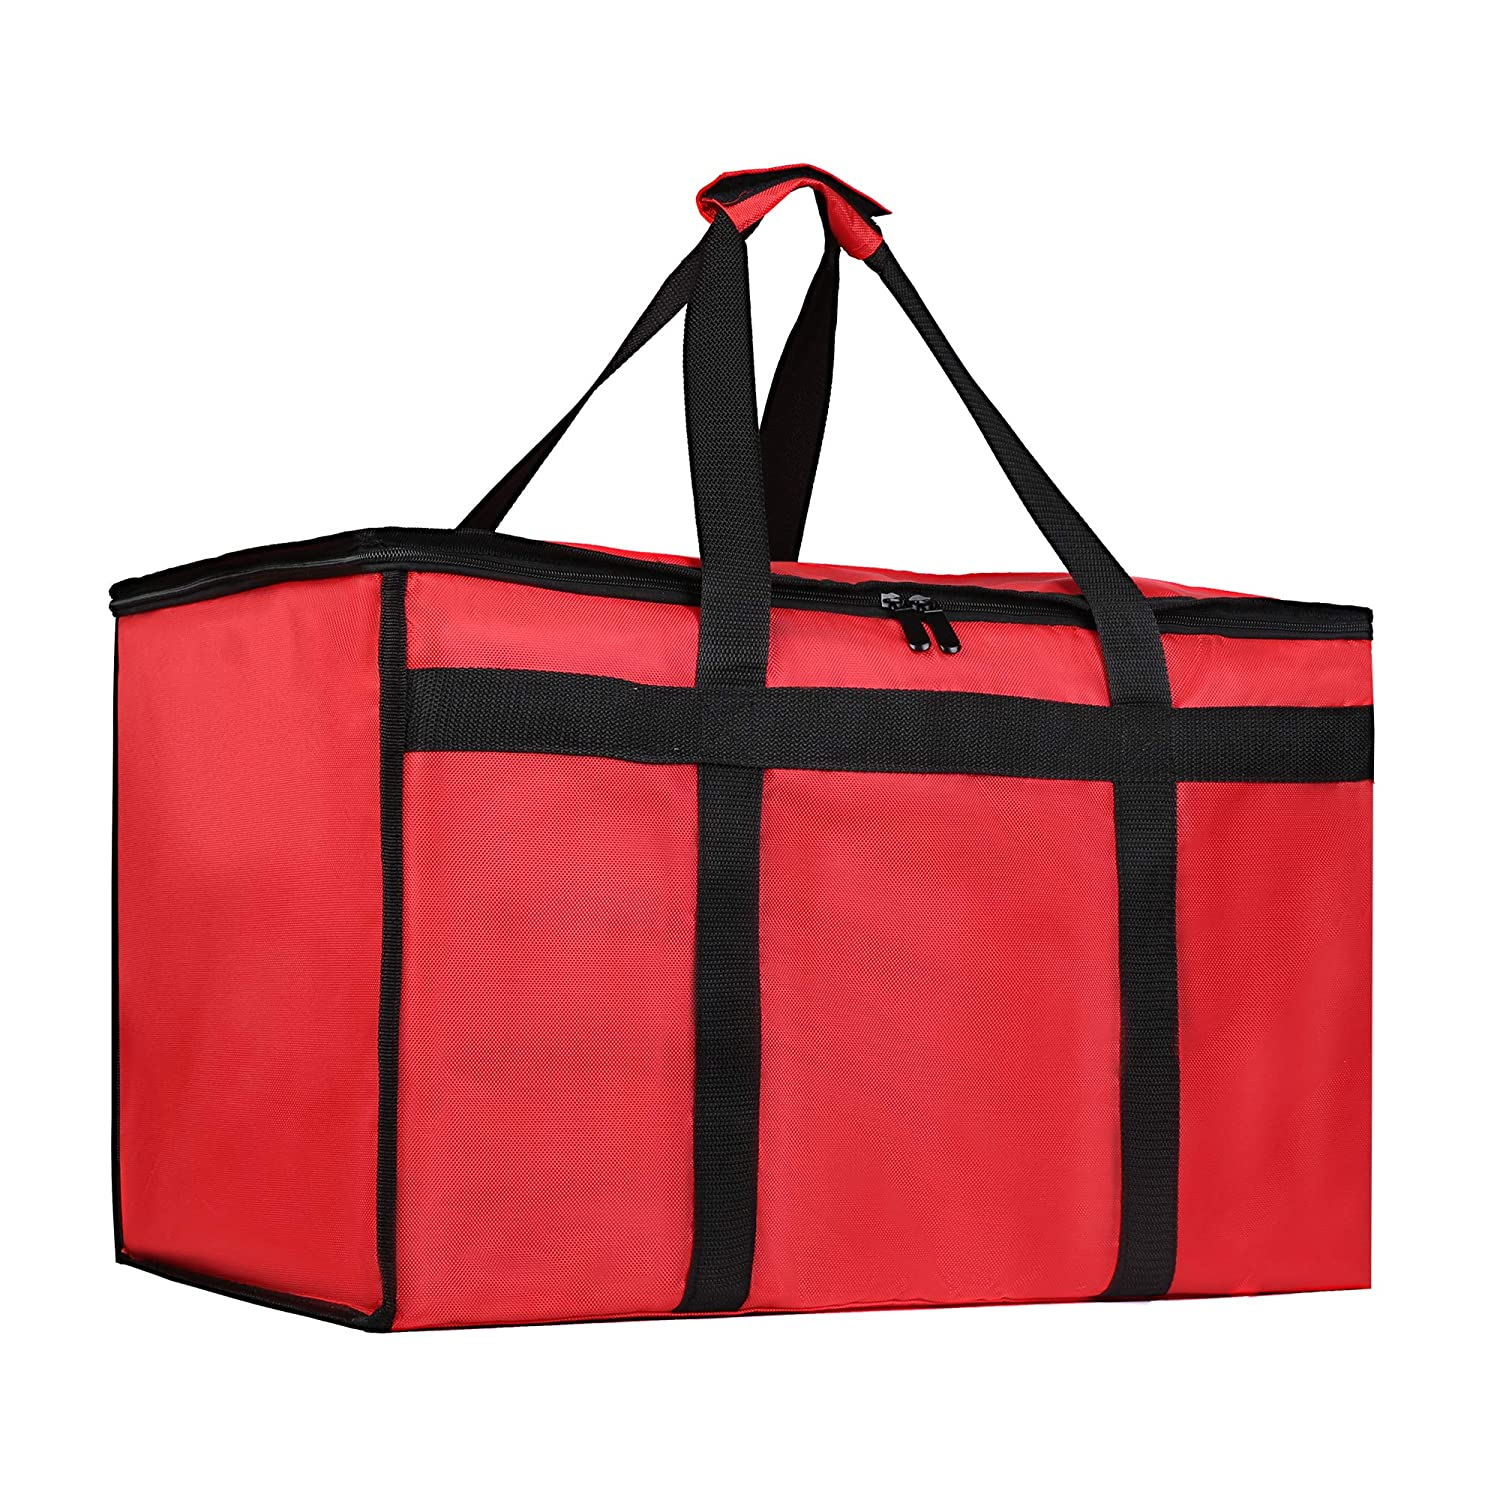 Insulated Food Delivery Bag for Uber Eats, Pizza Warmer Bag, Red Grocery Bag for Hot/Cold Item